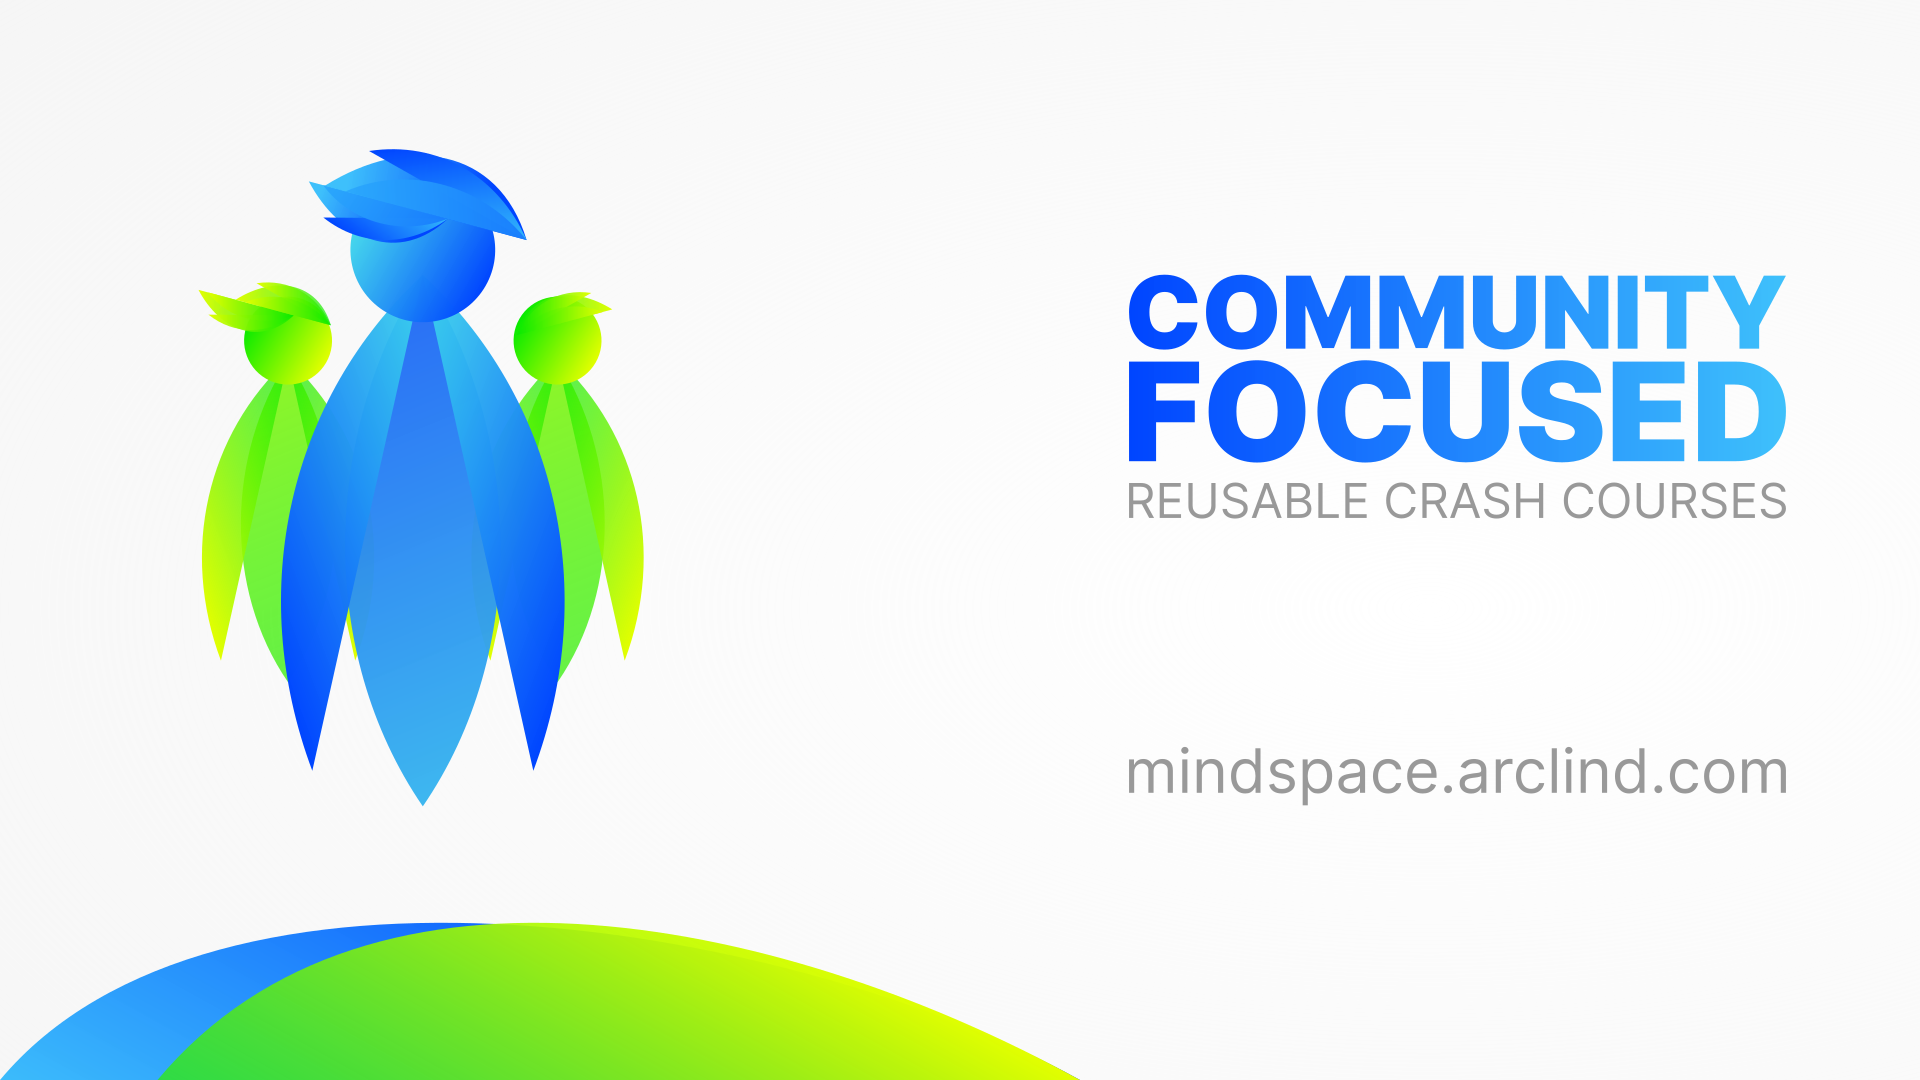 An illustration depicting community focus of Arclind Mindspace free crash courses.